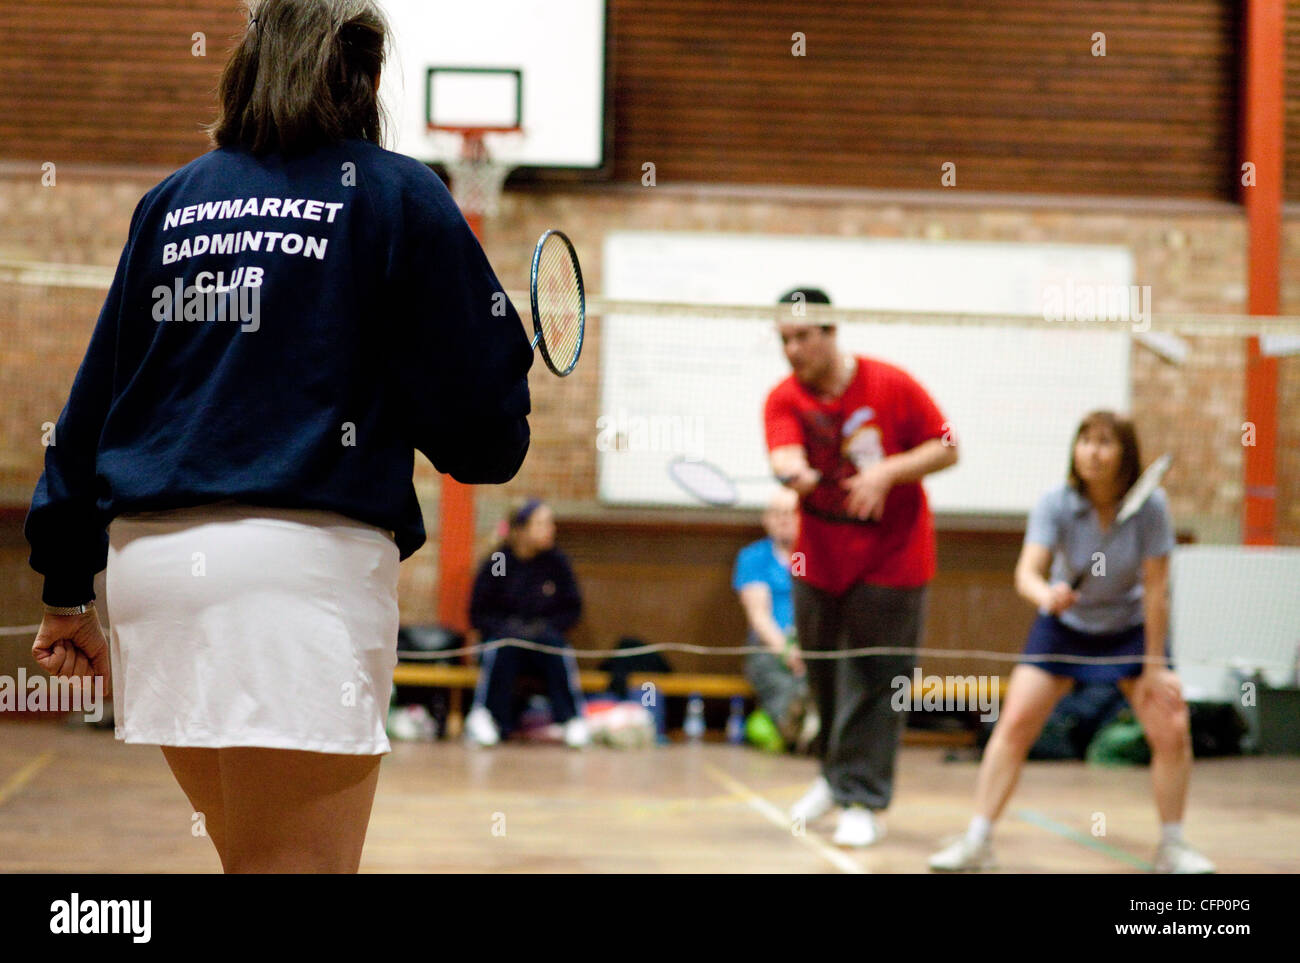 people playing badminton at their local club, Newmarket Suffolk UK - Stock Image